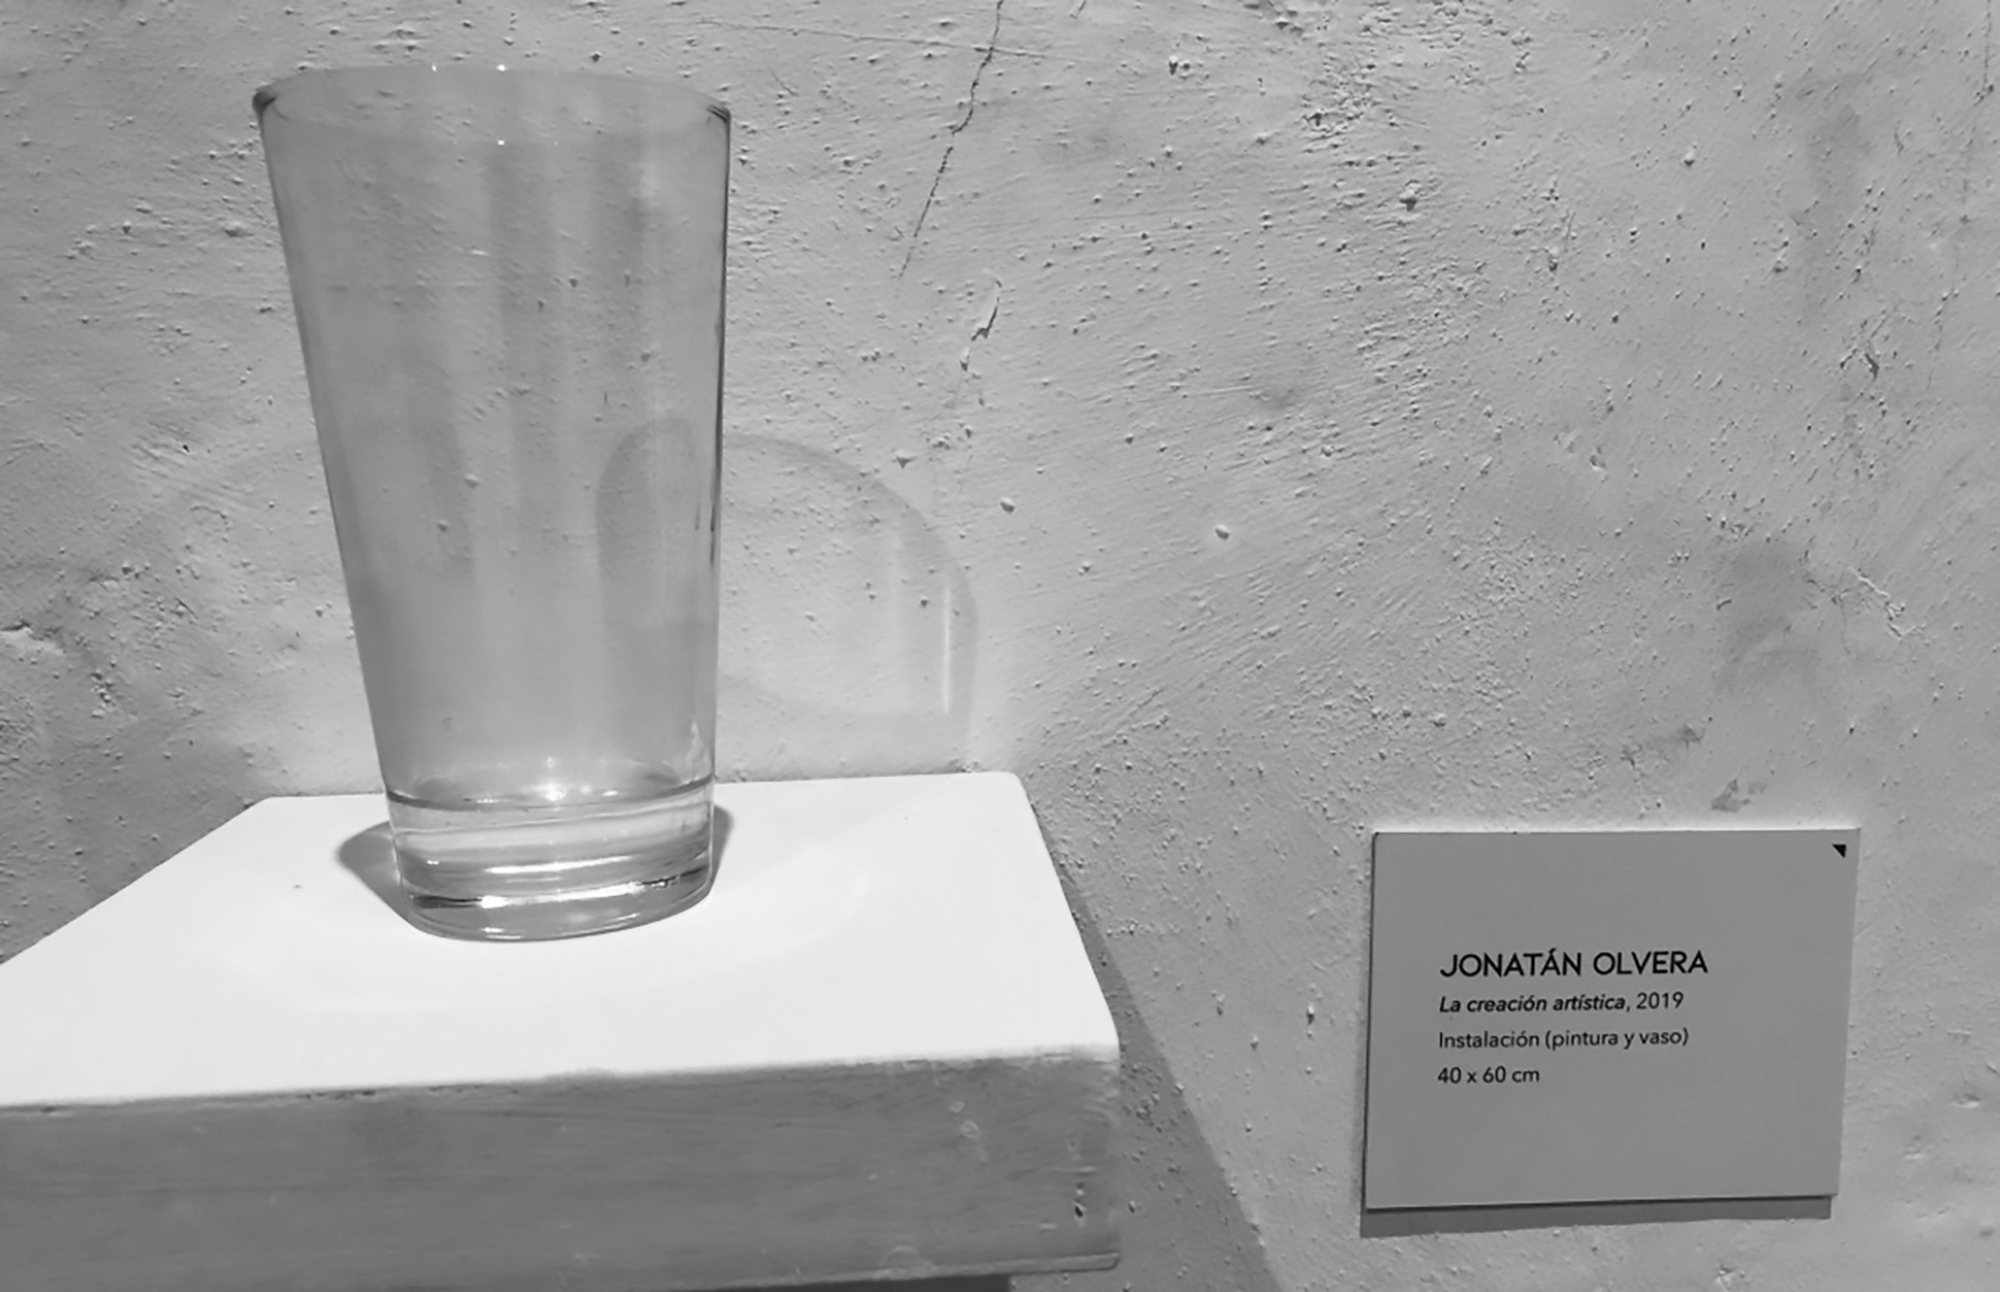 Barmy Artist Slammed For Displaying Glass Of Water